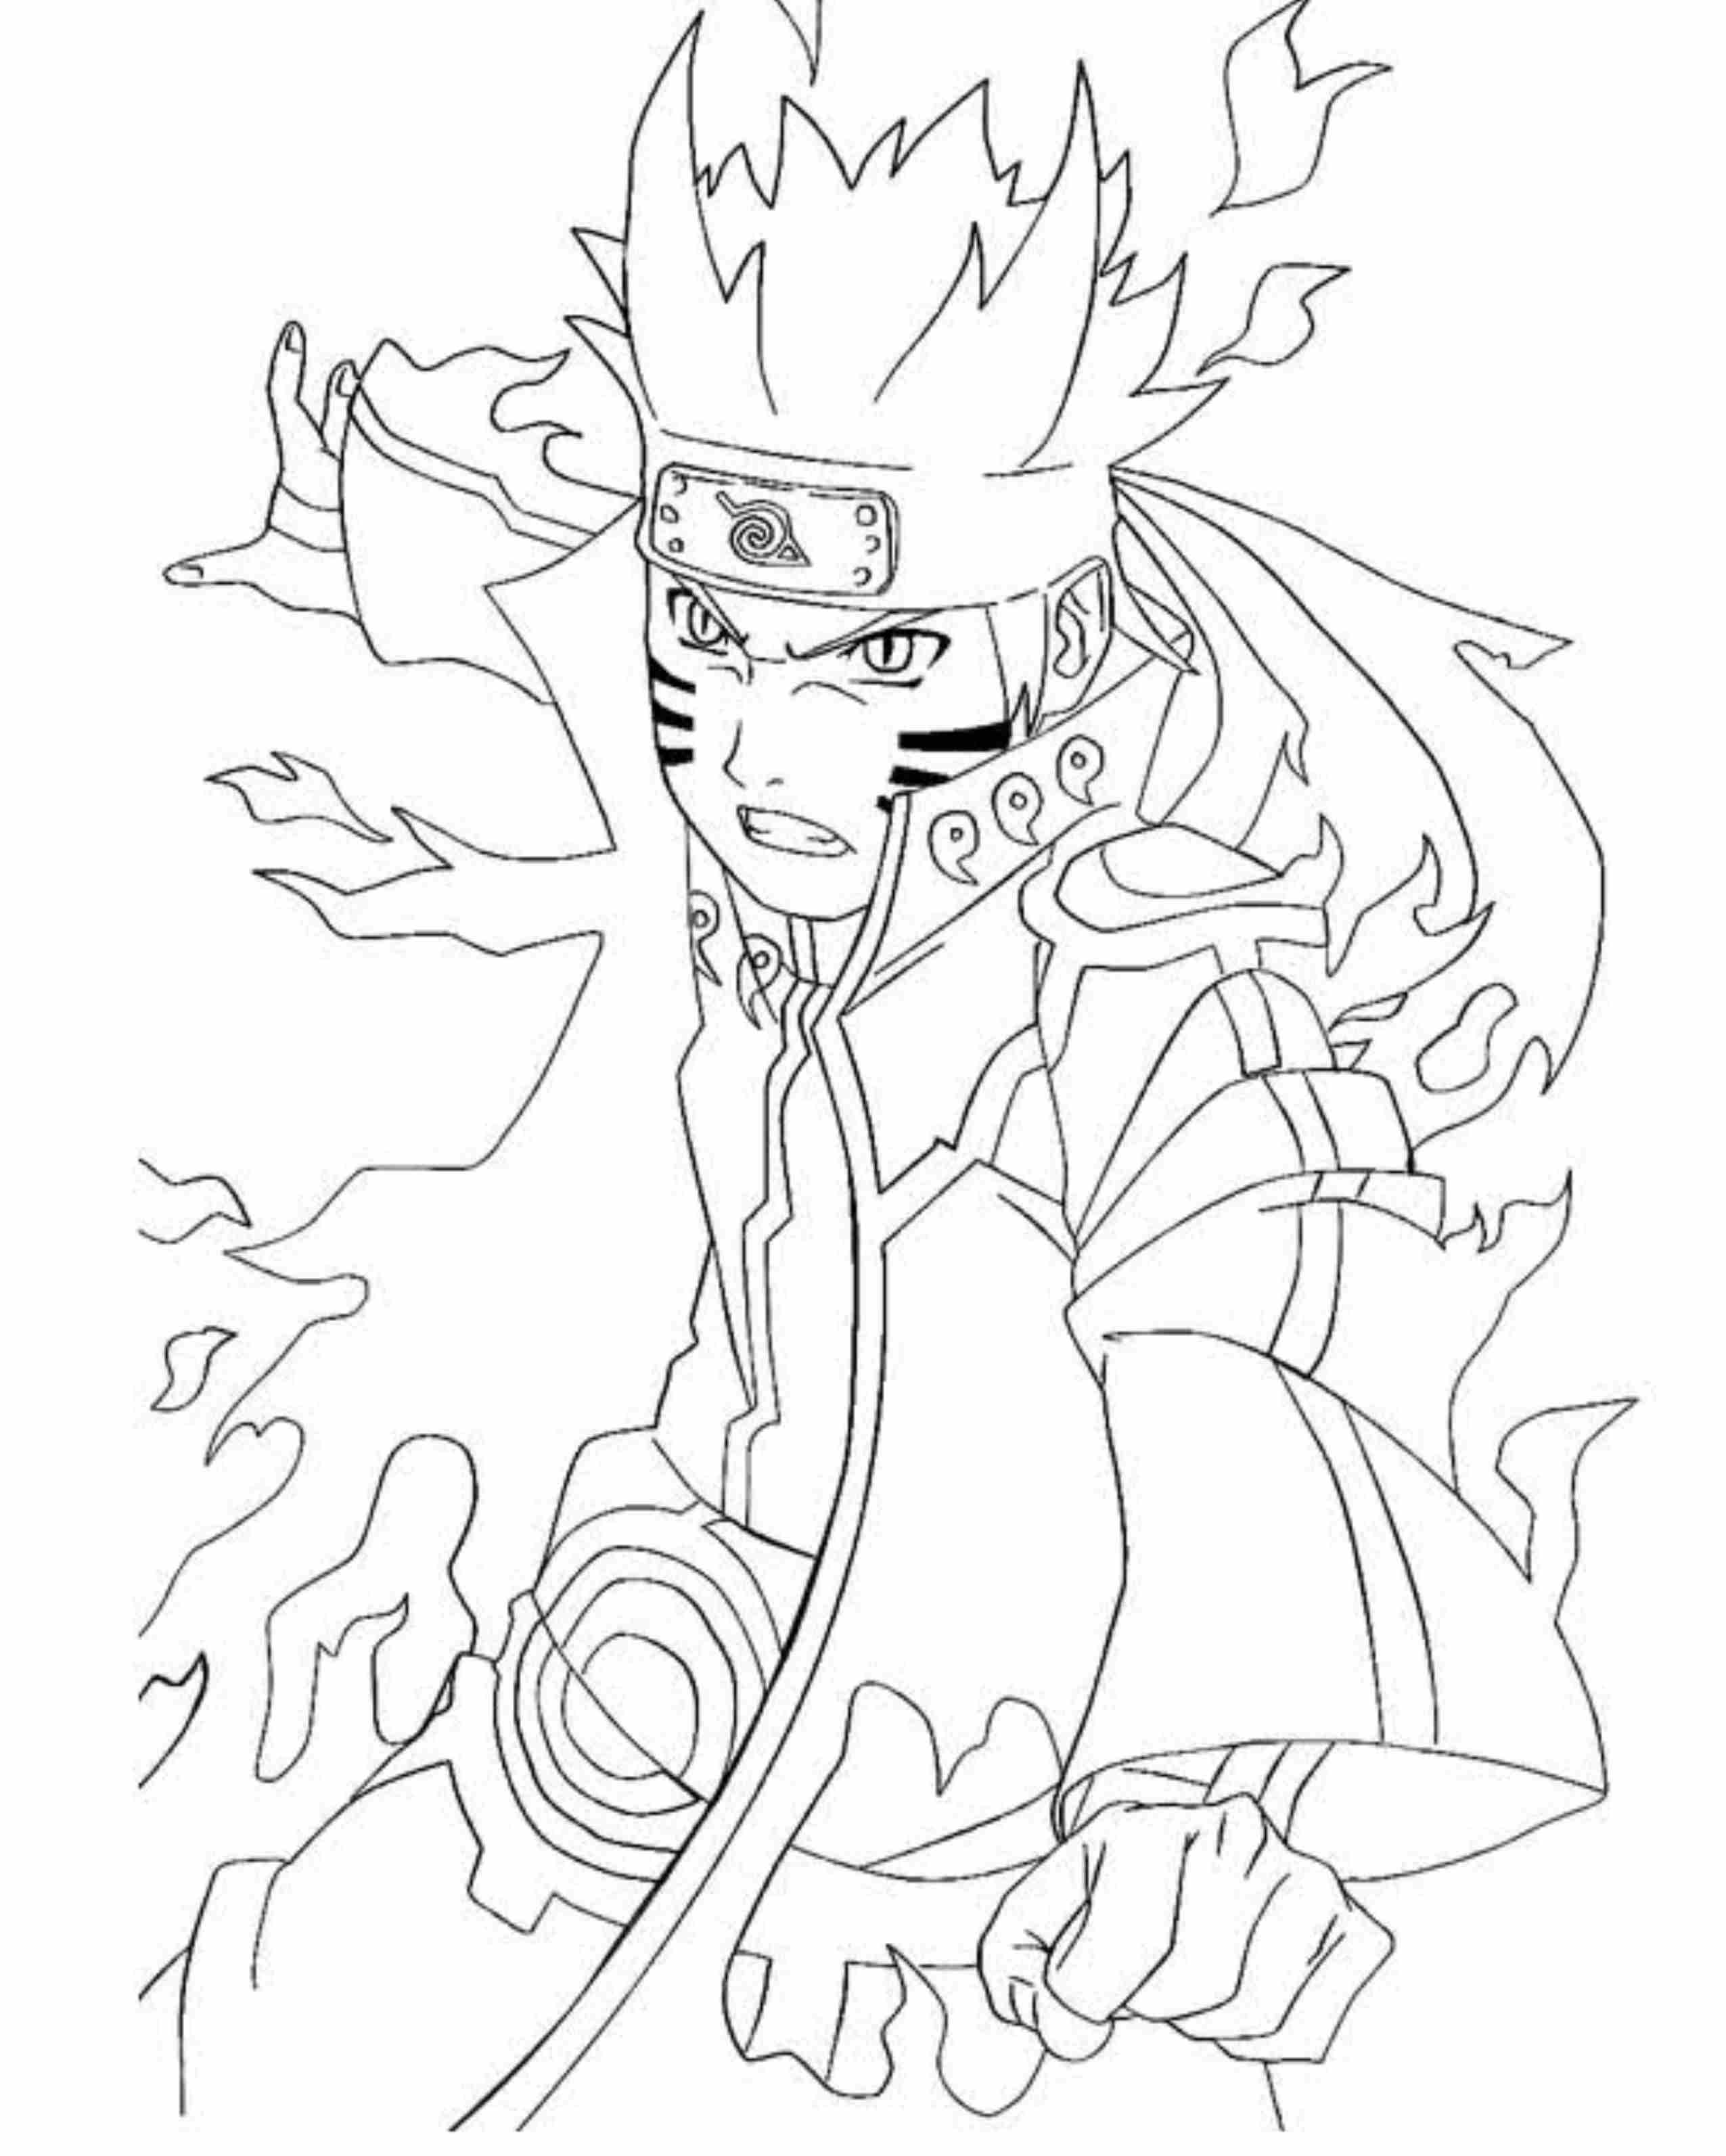 naruto coloring page naruto coloring pages naruto page coloring